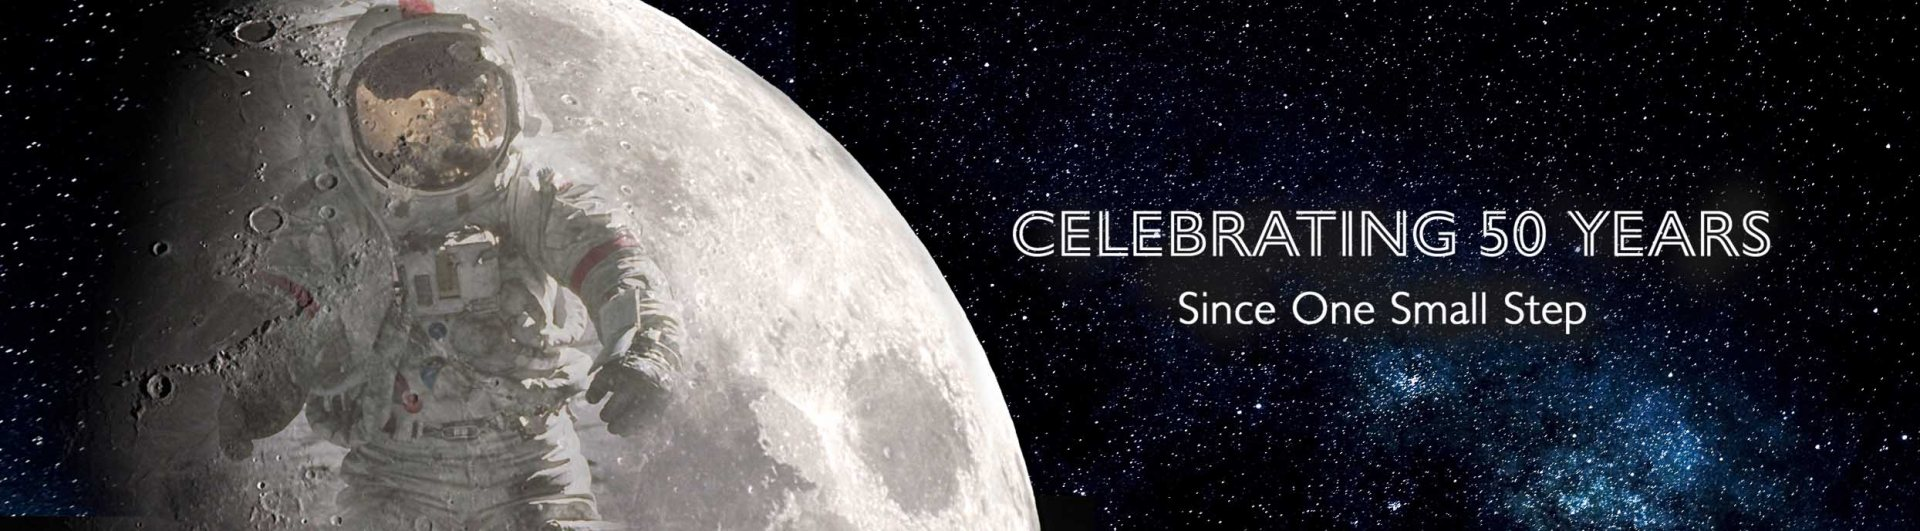 Celebrating 50 Years Since One Small Step